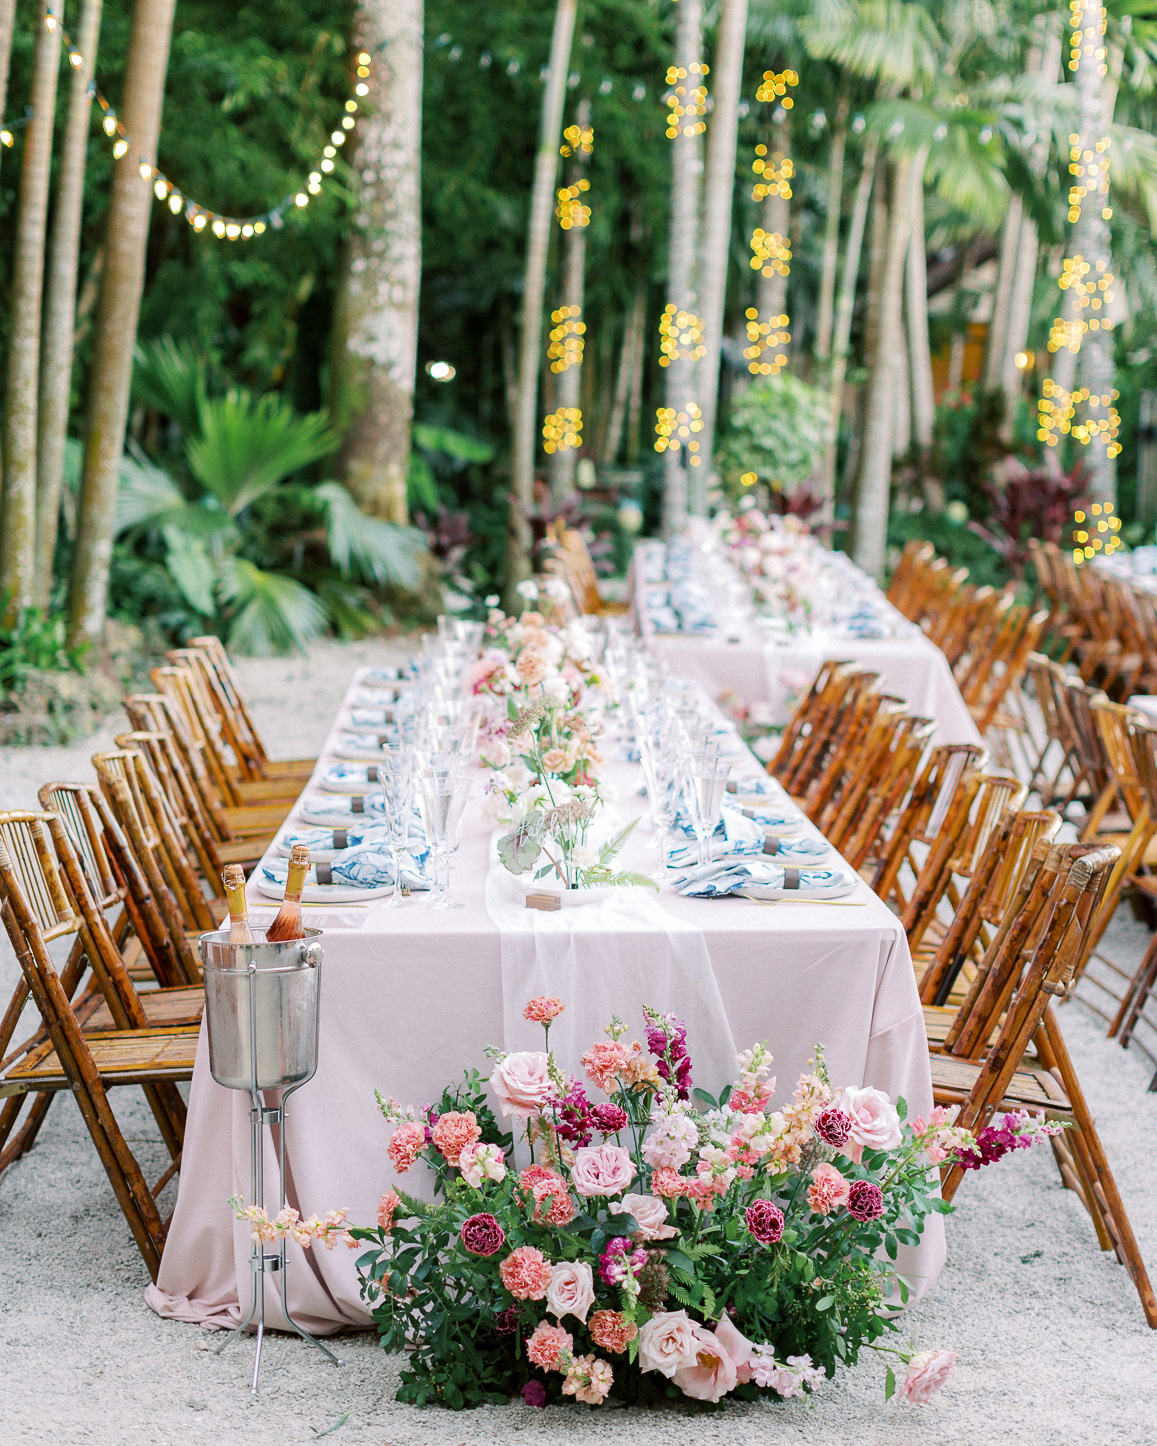 melissa lindsey wedding reception outdoor long table wooden chairs florals